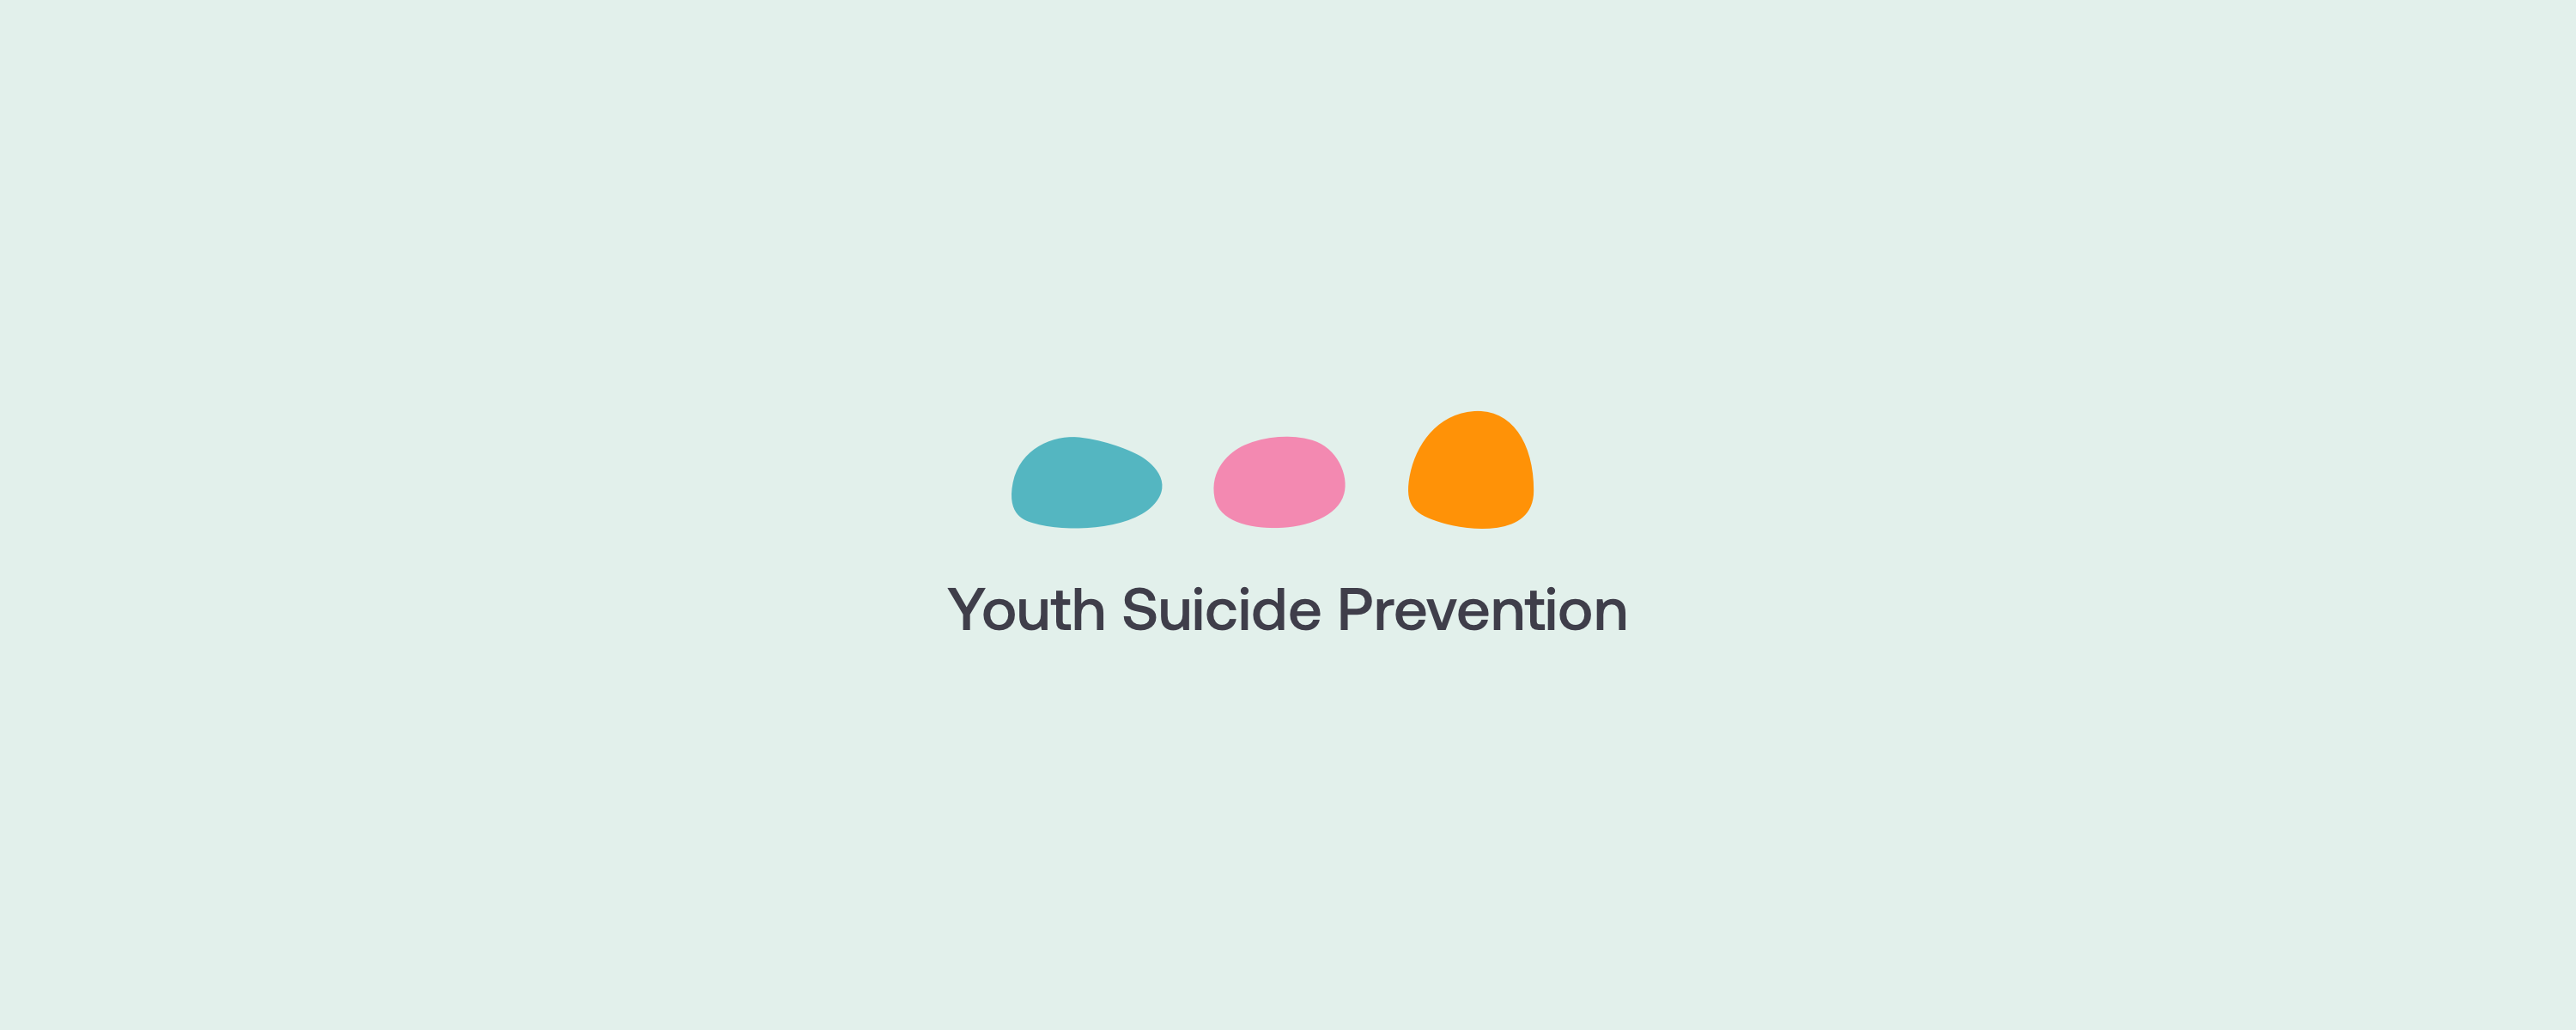 Joon Care's team provides tips about addressing feelings of suicidality.